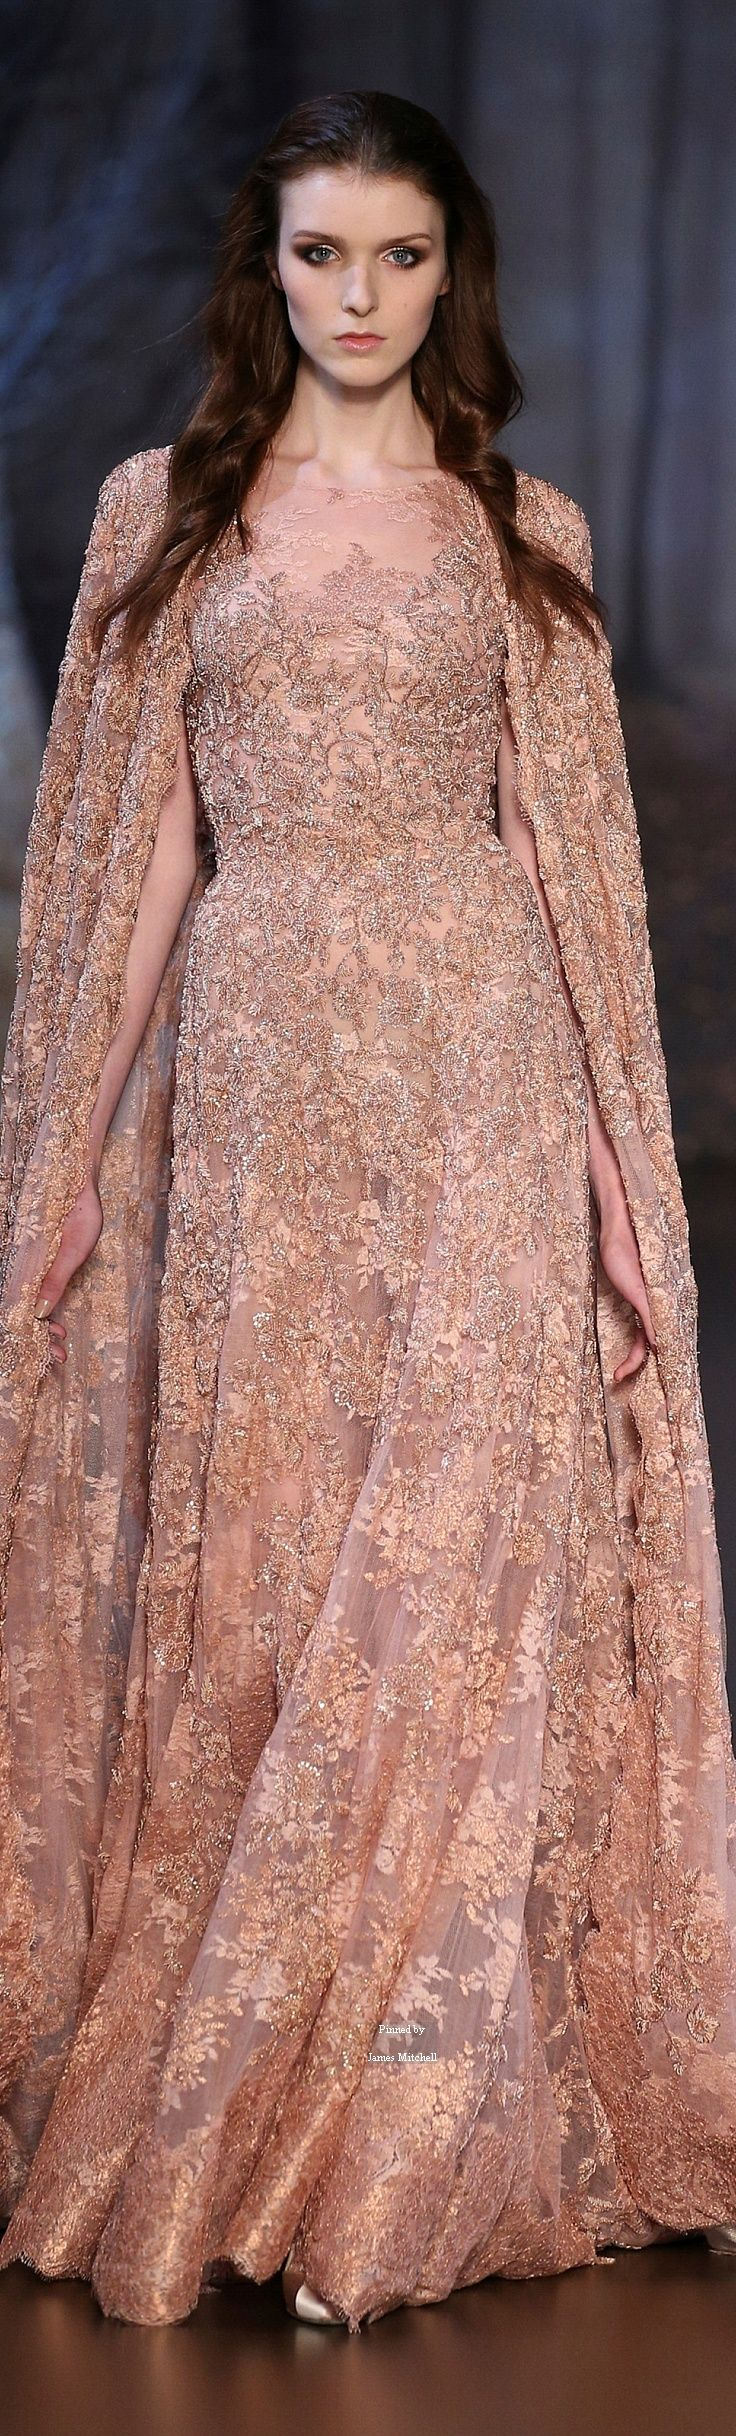 Ralph & Russo Haute Couture Fall Winter 2015-16 collection - how stunning is this dress